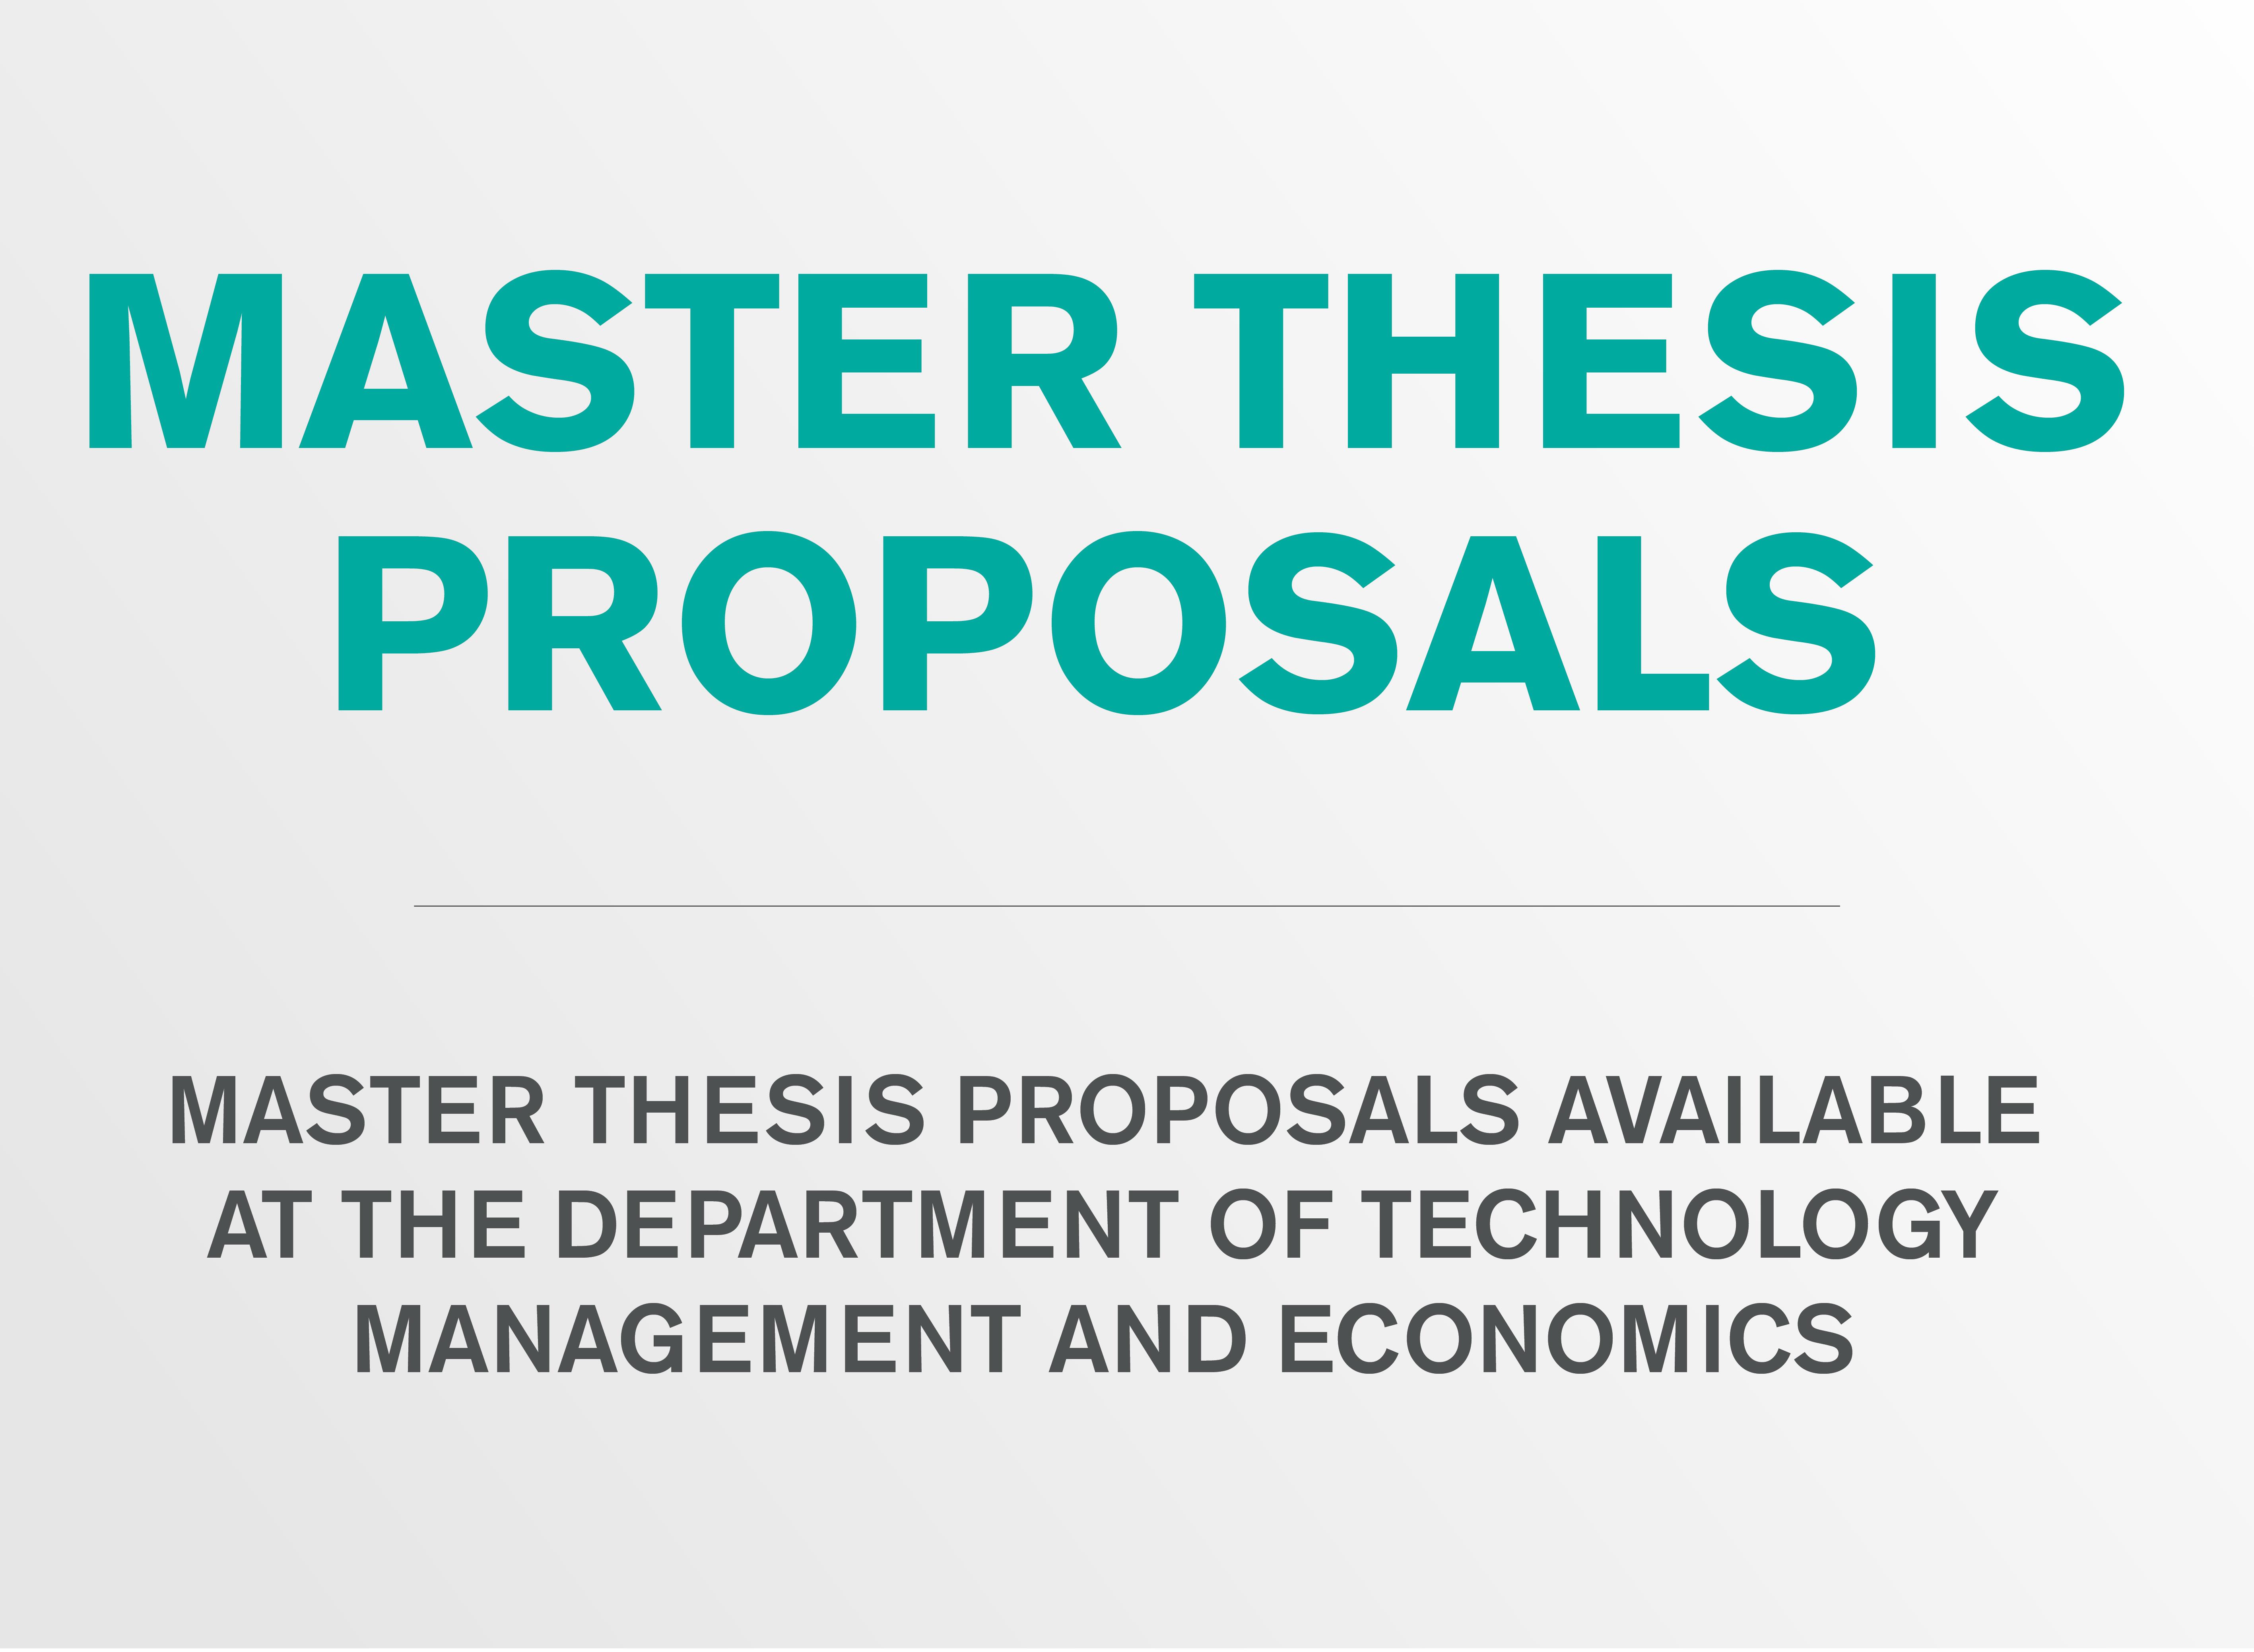 Master thesis proposals at the department of Technology Management and Economics.